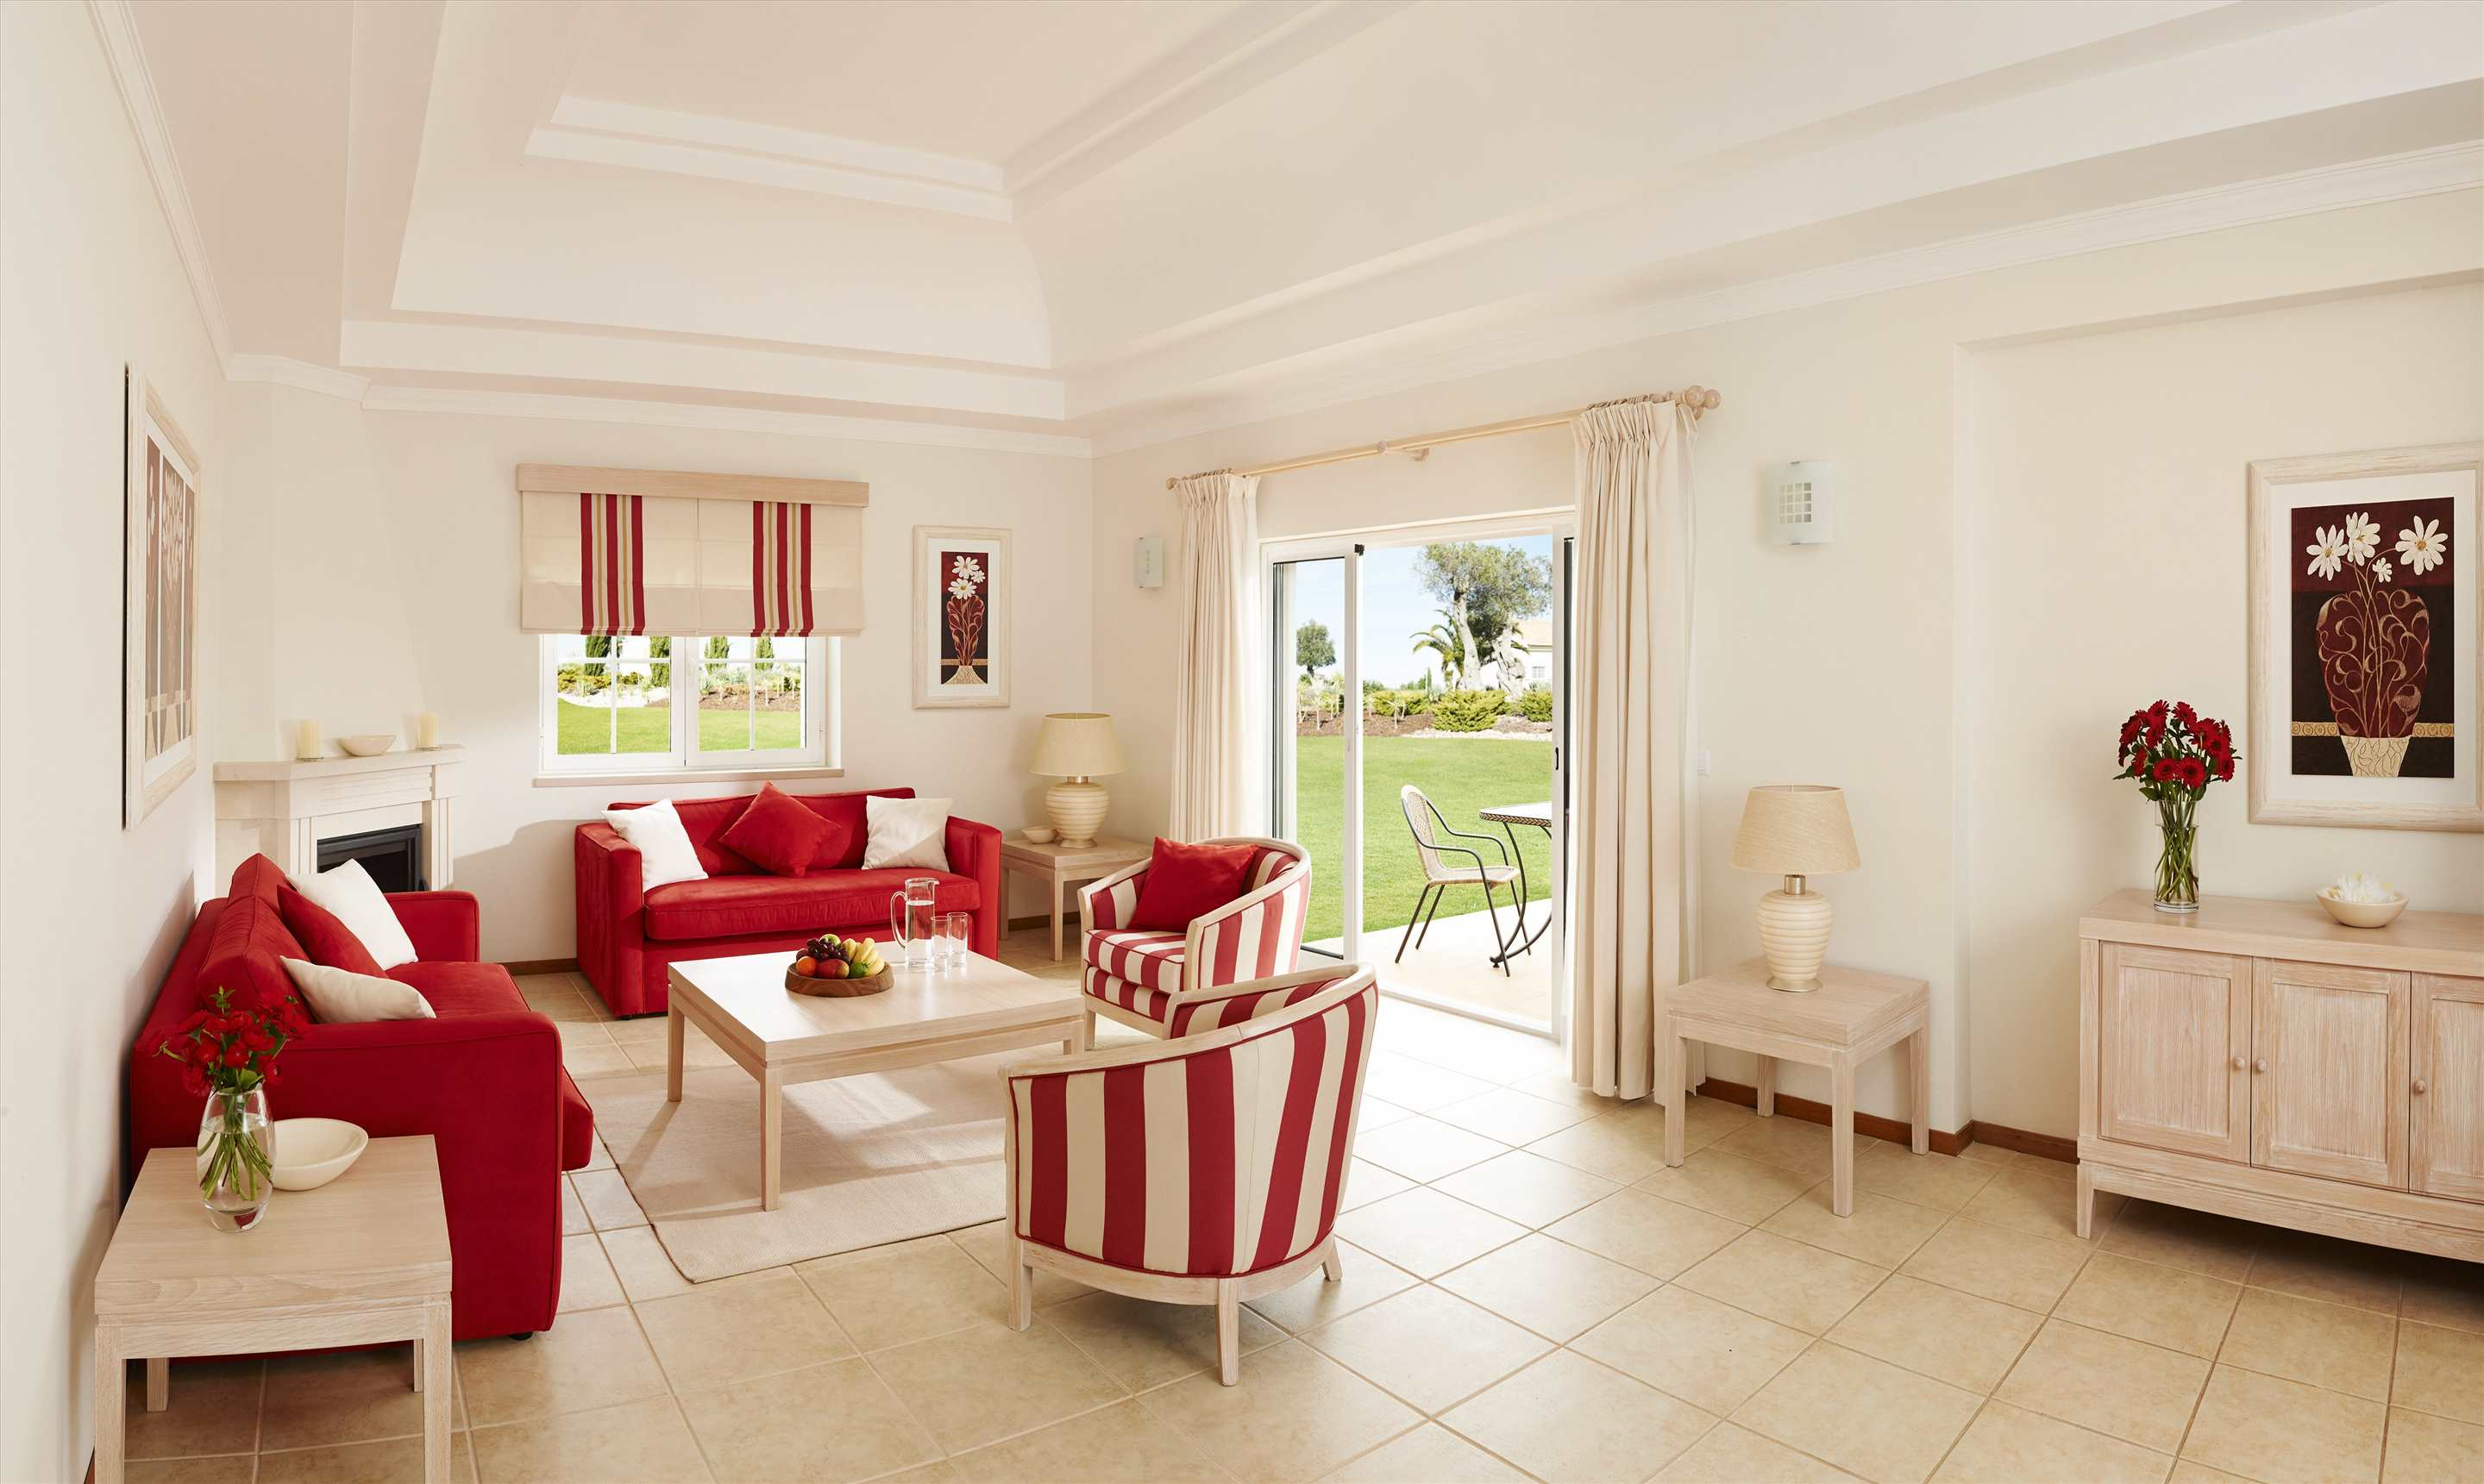 Vale d'Oliveiras 1 Bed Suite Garden View , Bed & Breakfast, 1 bedroom apartment in Vale d'Oliveiras Resort & Spa, Algarve Photo #5